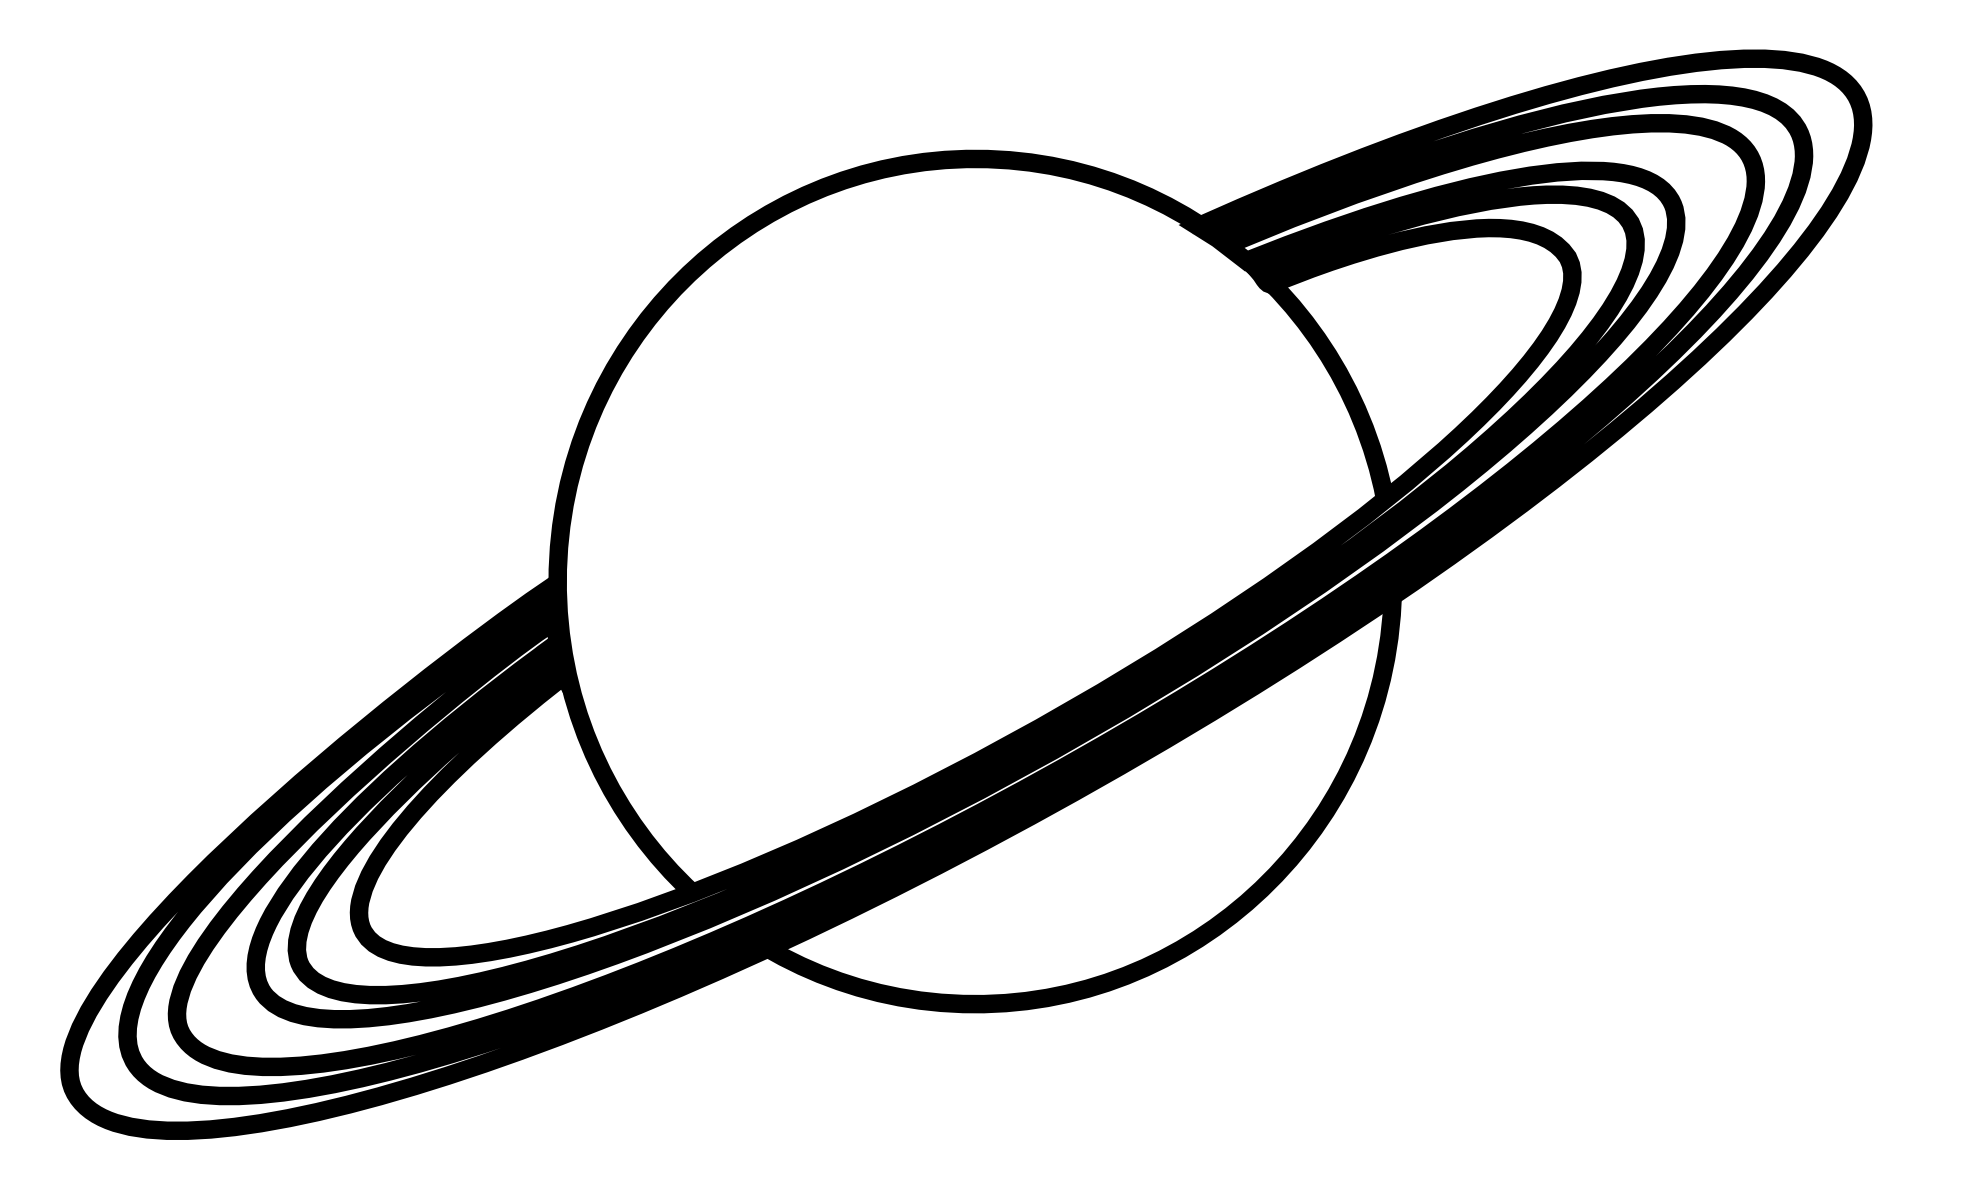 Planets clipart drawn #9